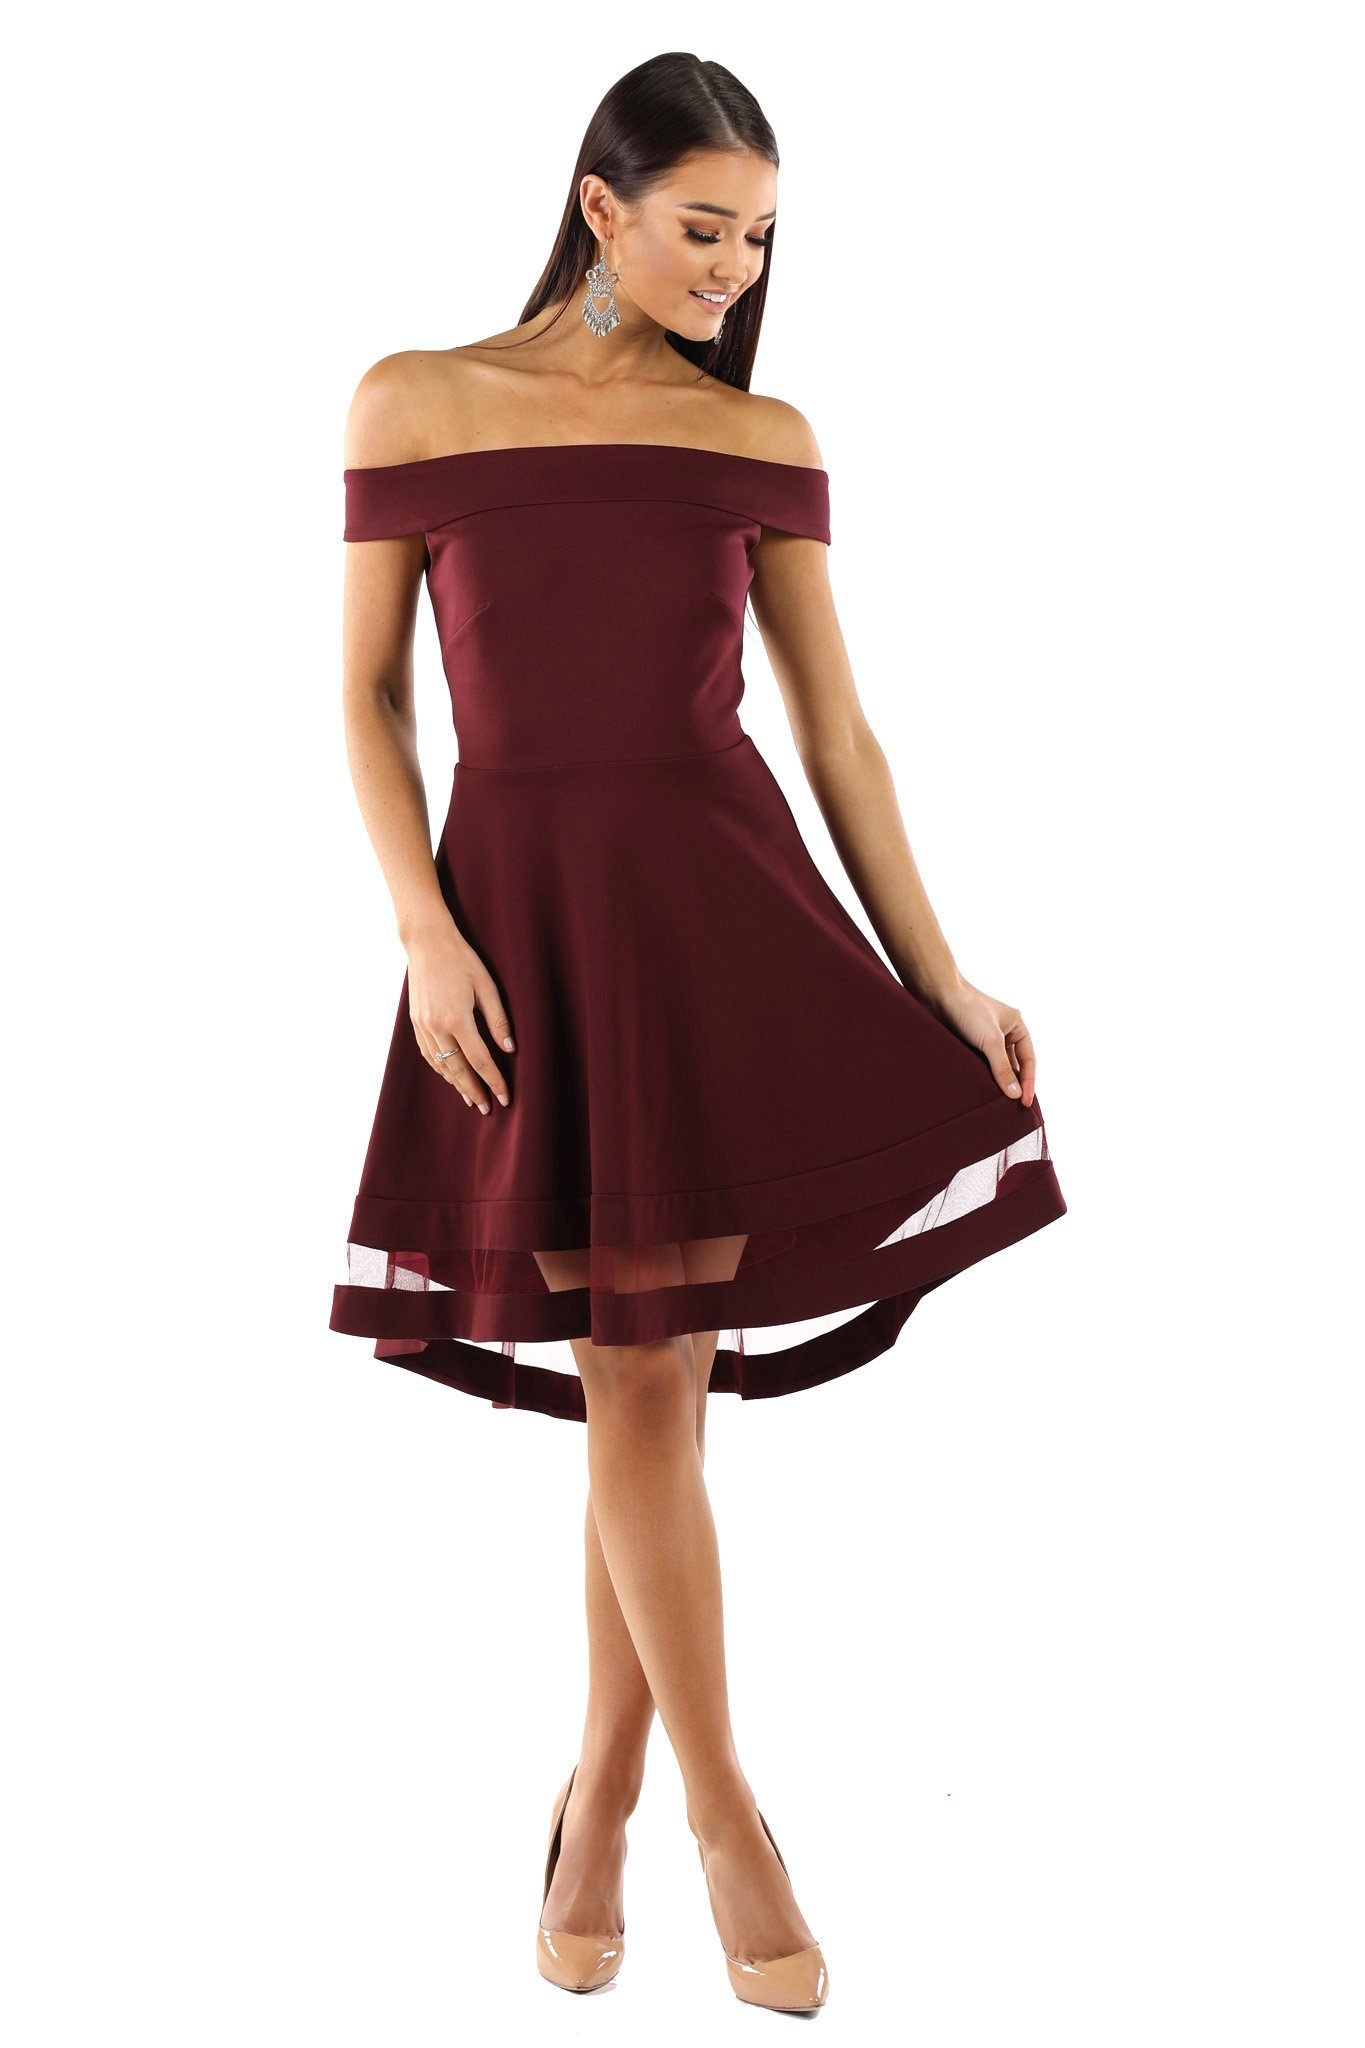 0d1f78d3 Burgundy skater dress with off the shoulder design, hi-low knee length  hemline,